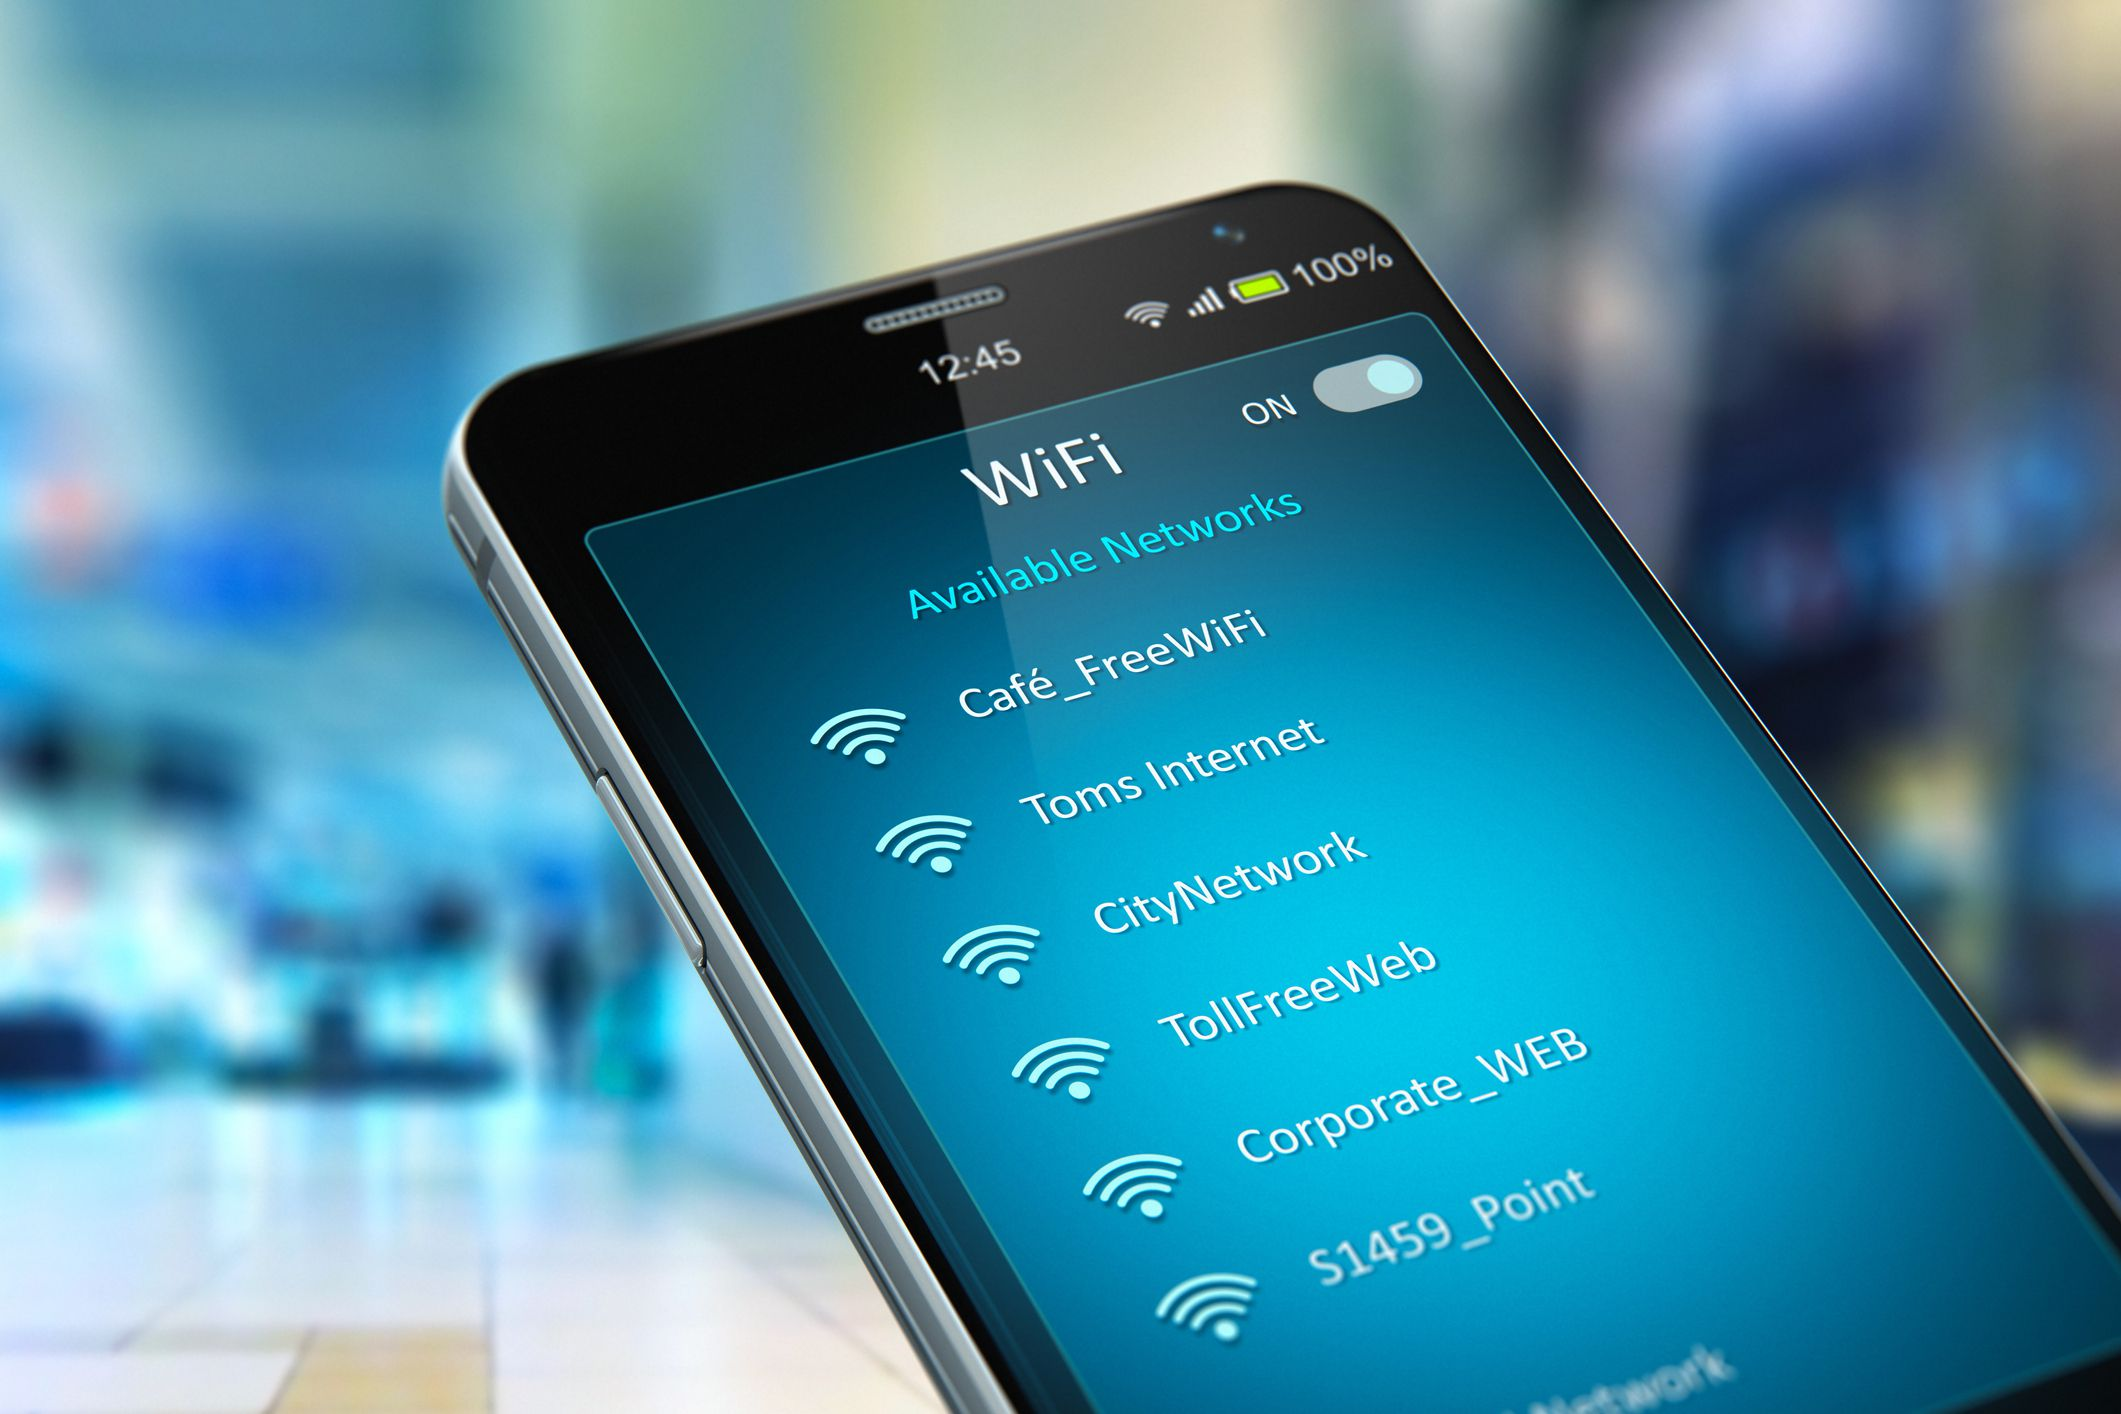 wifi calling now available with Utility Warehouse